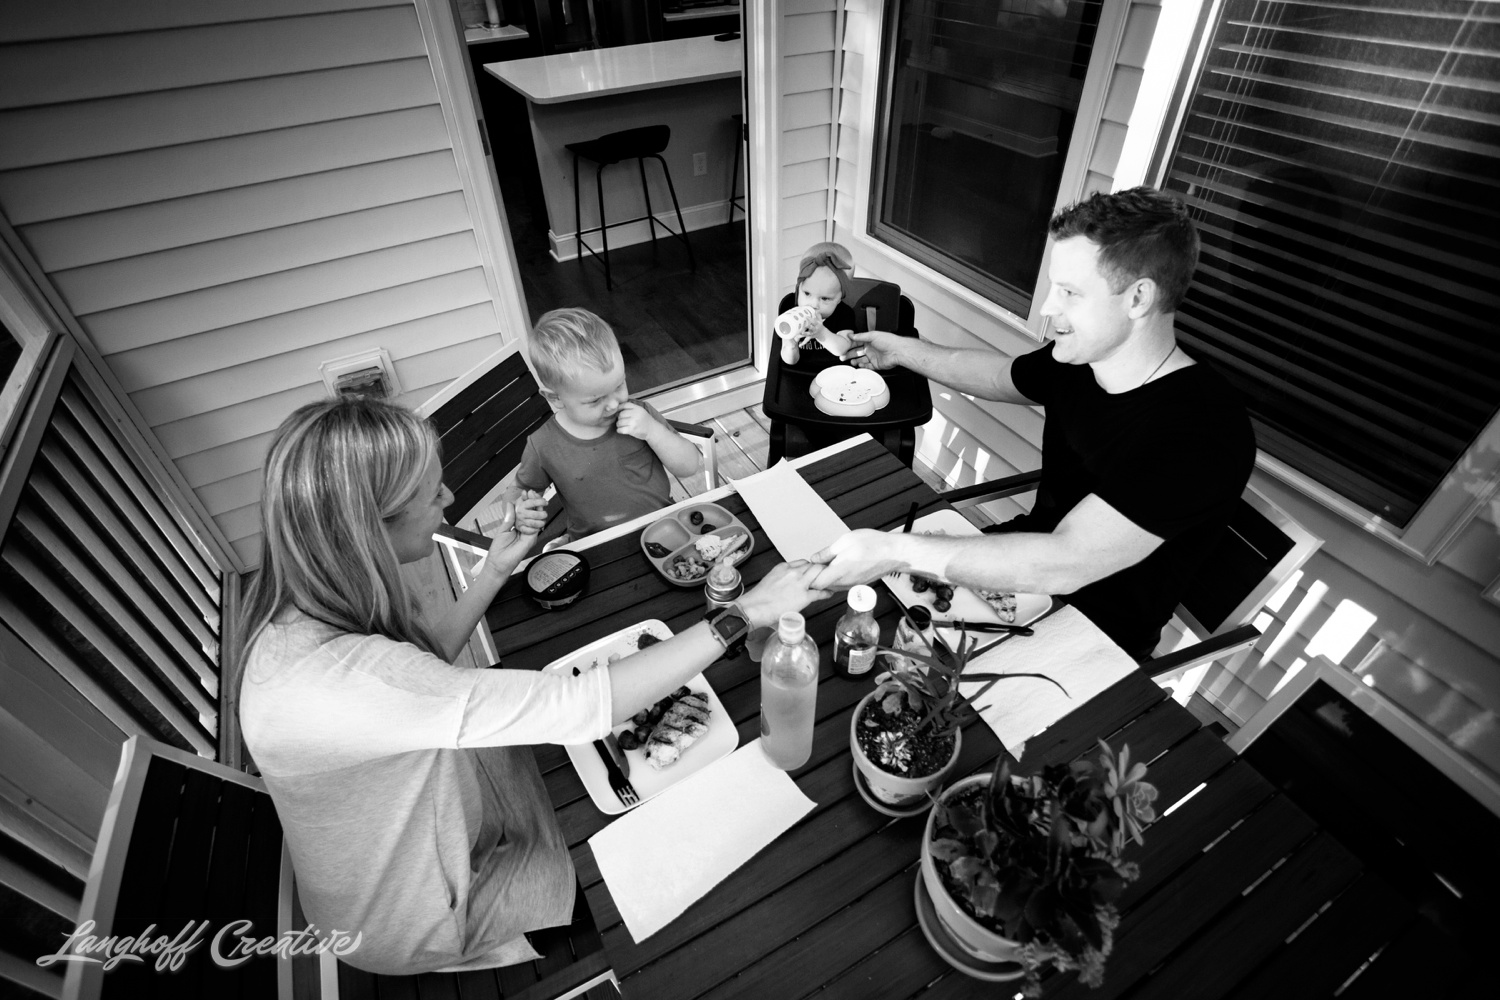 2018-RealLifeSession-Livingood-DayInTheLife-DocumentaryFamilyPhotography-Raleigh-Durham-Cary-RDU-FamilyPhotographer-22-LanghoffCreative-AmberLanghoff-photo.jpg